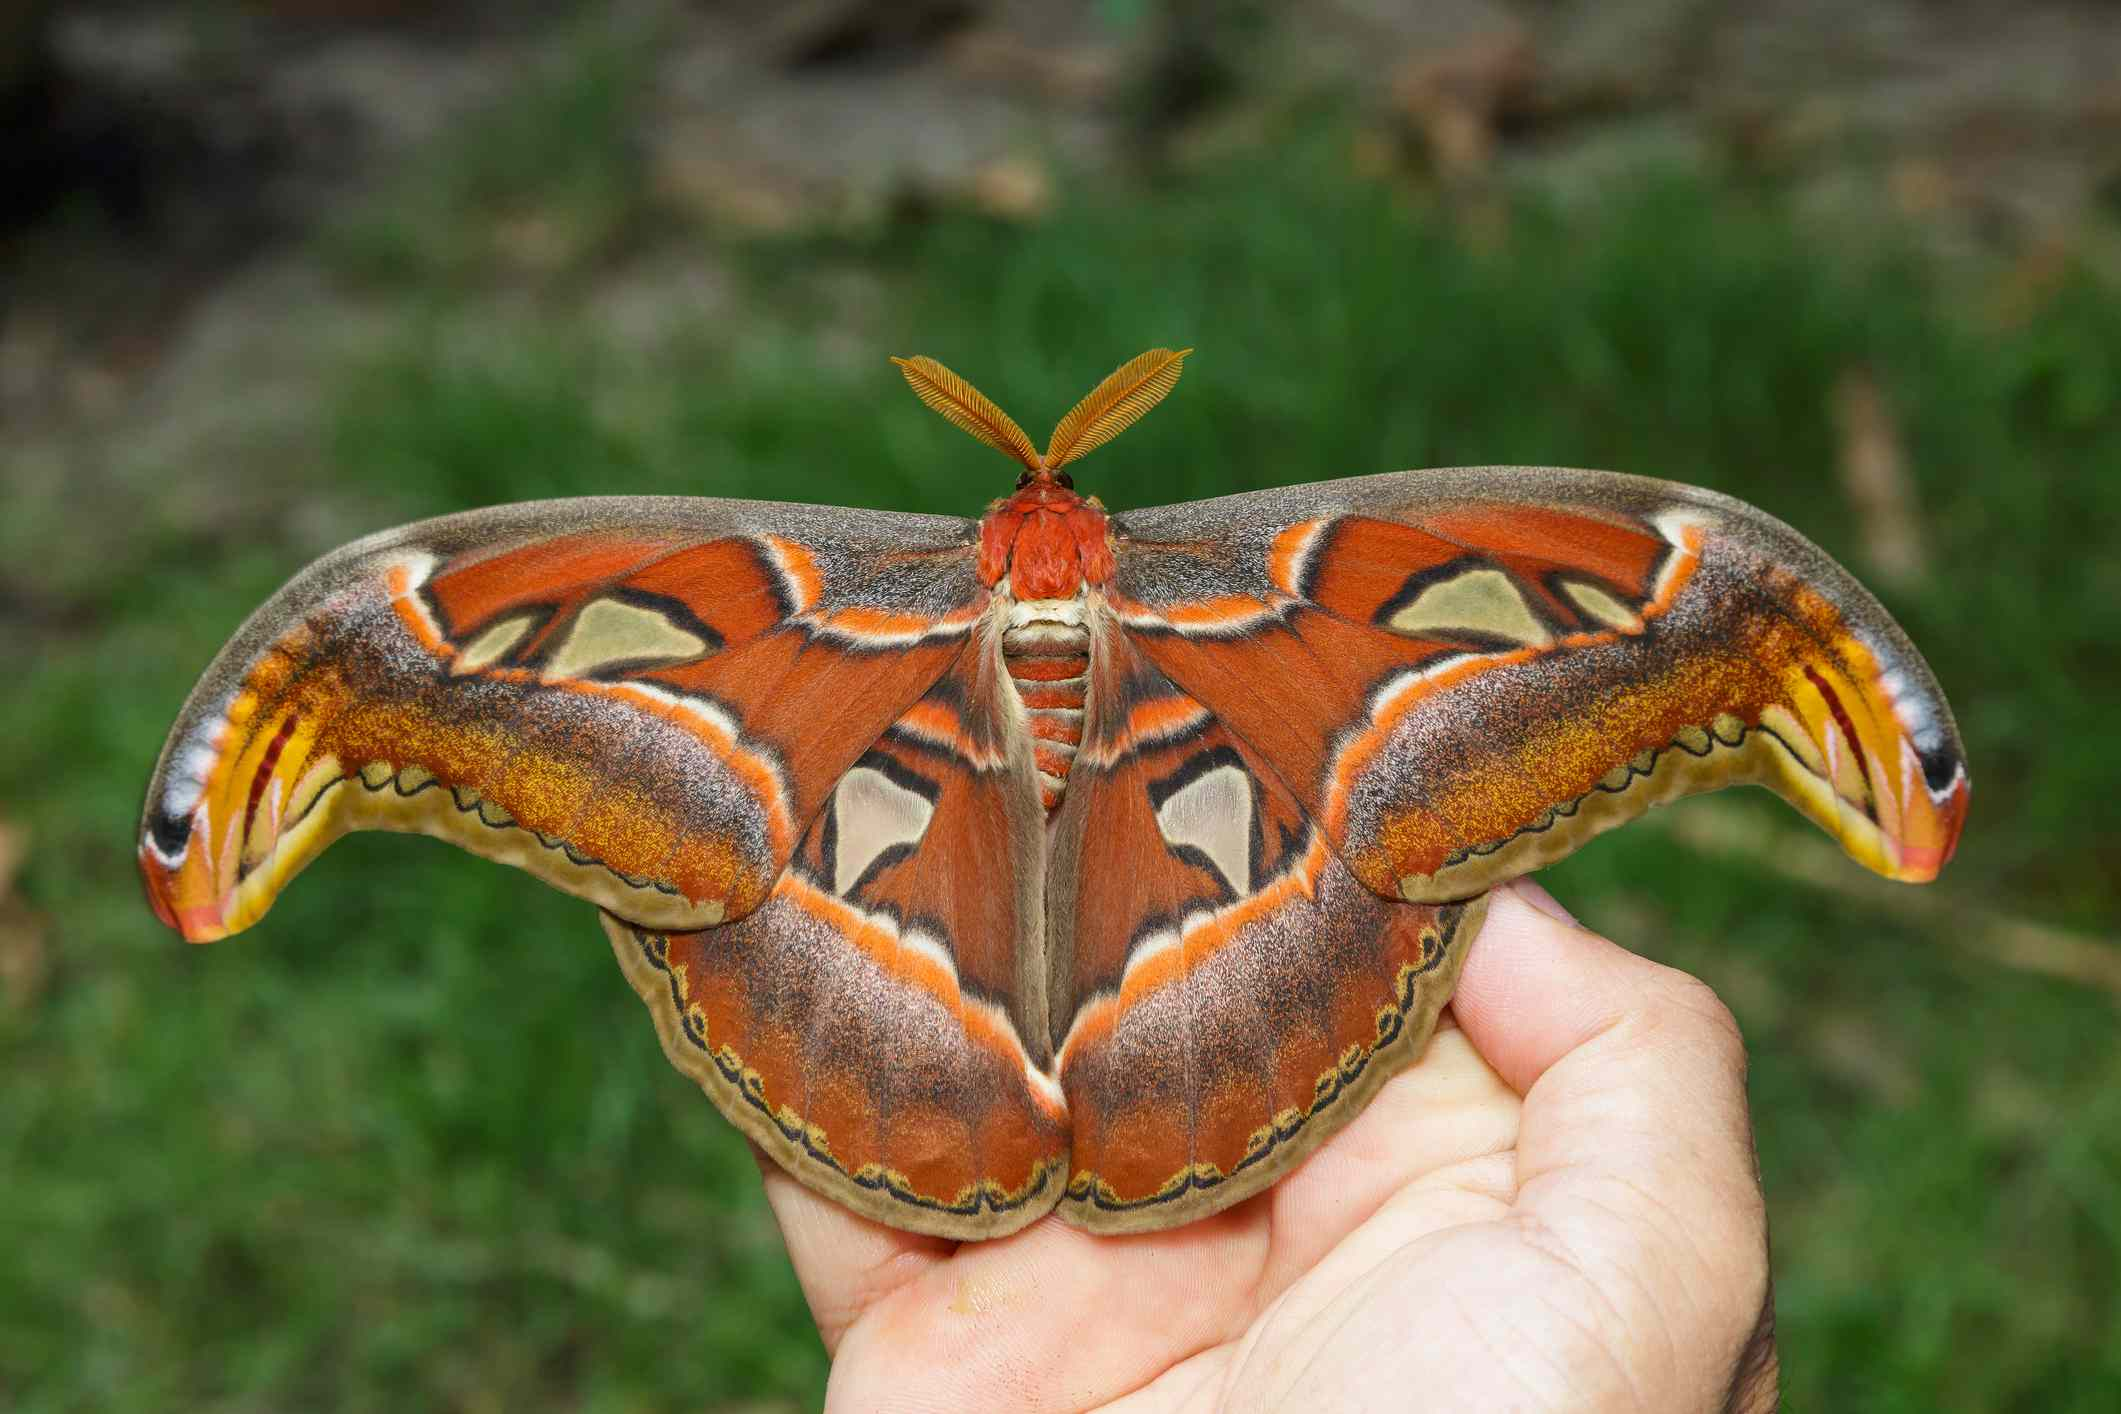 Female atlas moth on a human hand to demonstrate size